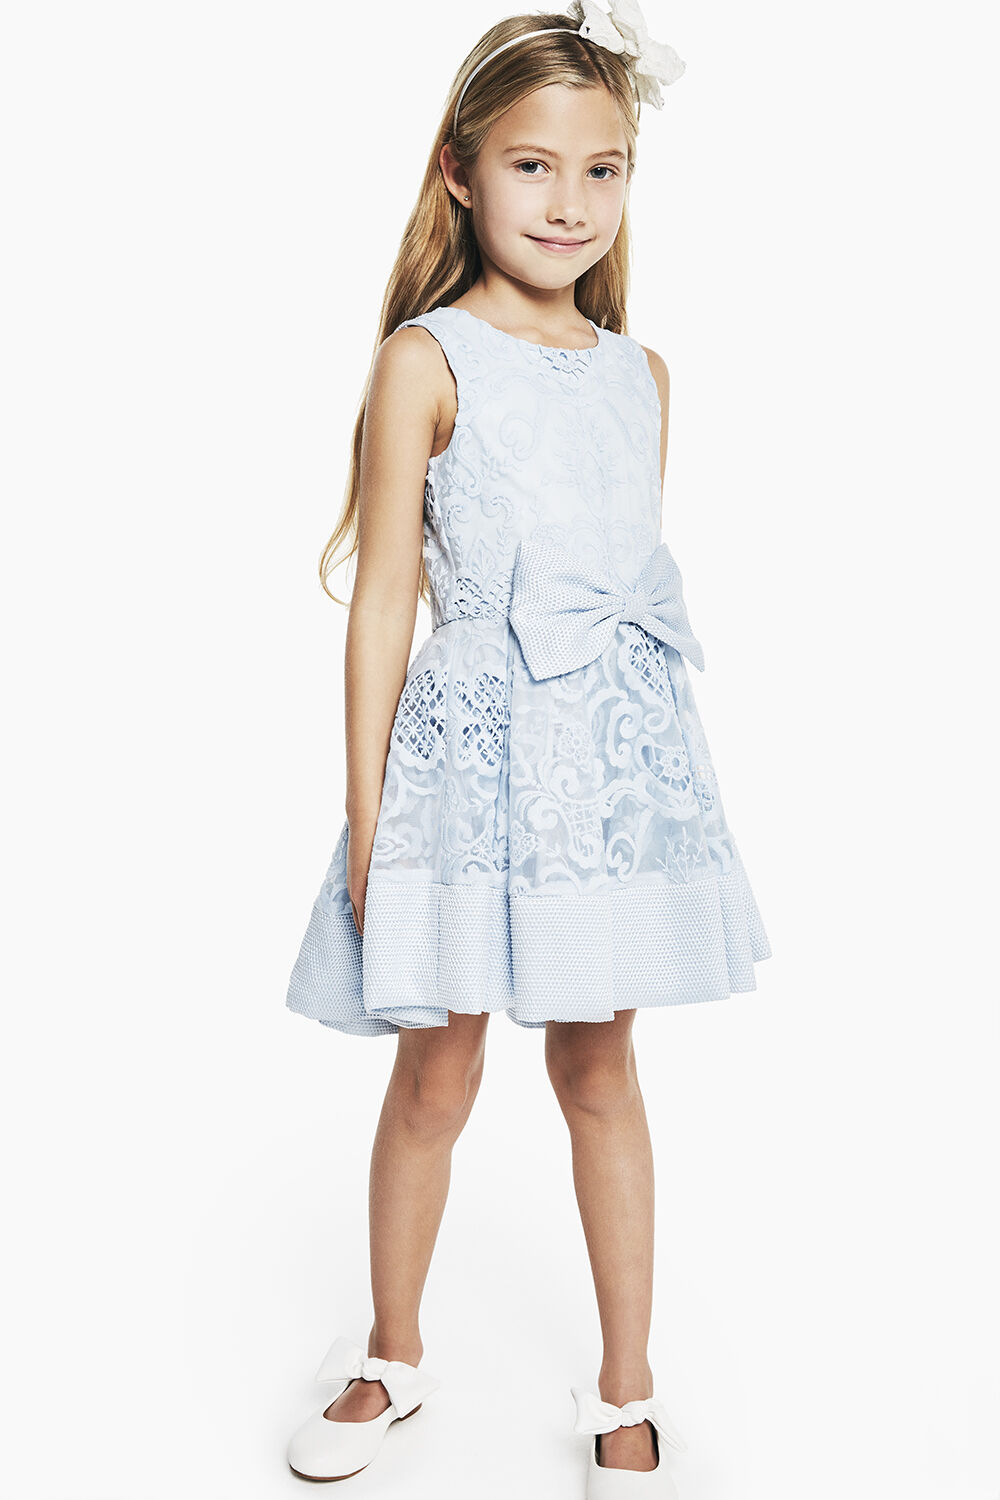 JUNIOR GIRL  AVA STARLET DRESS   in colour BALLAD BLUE